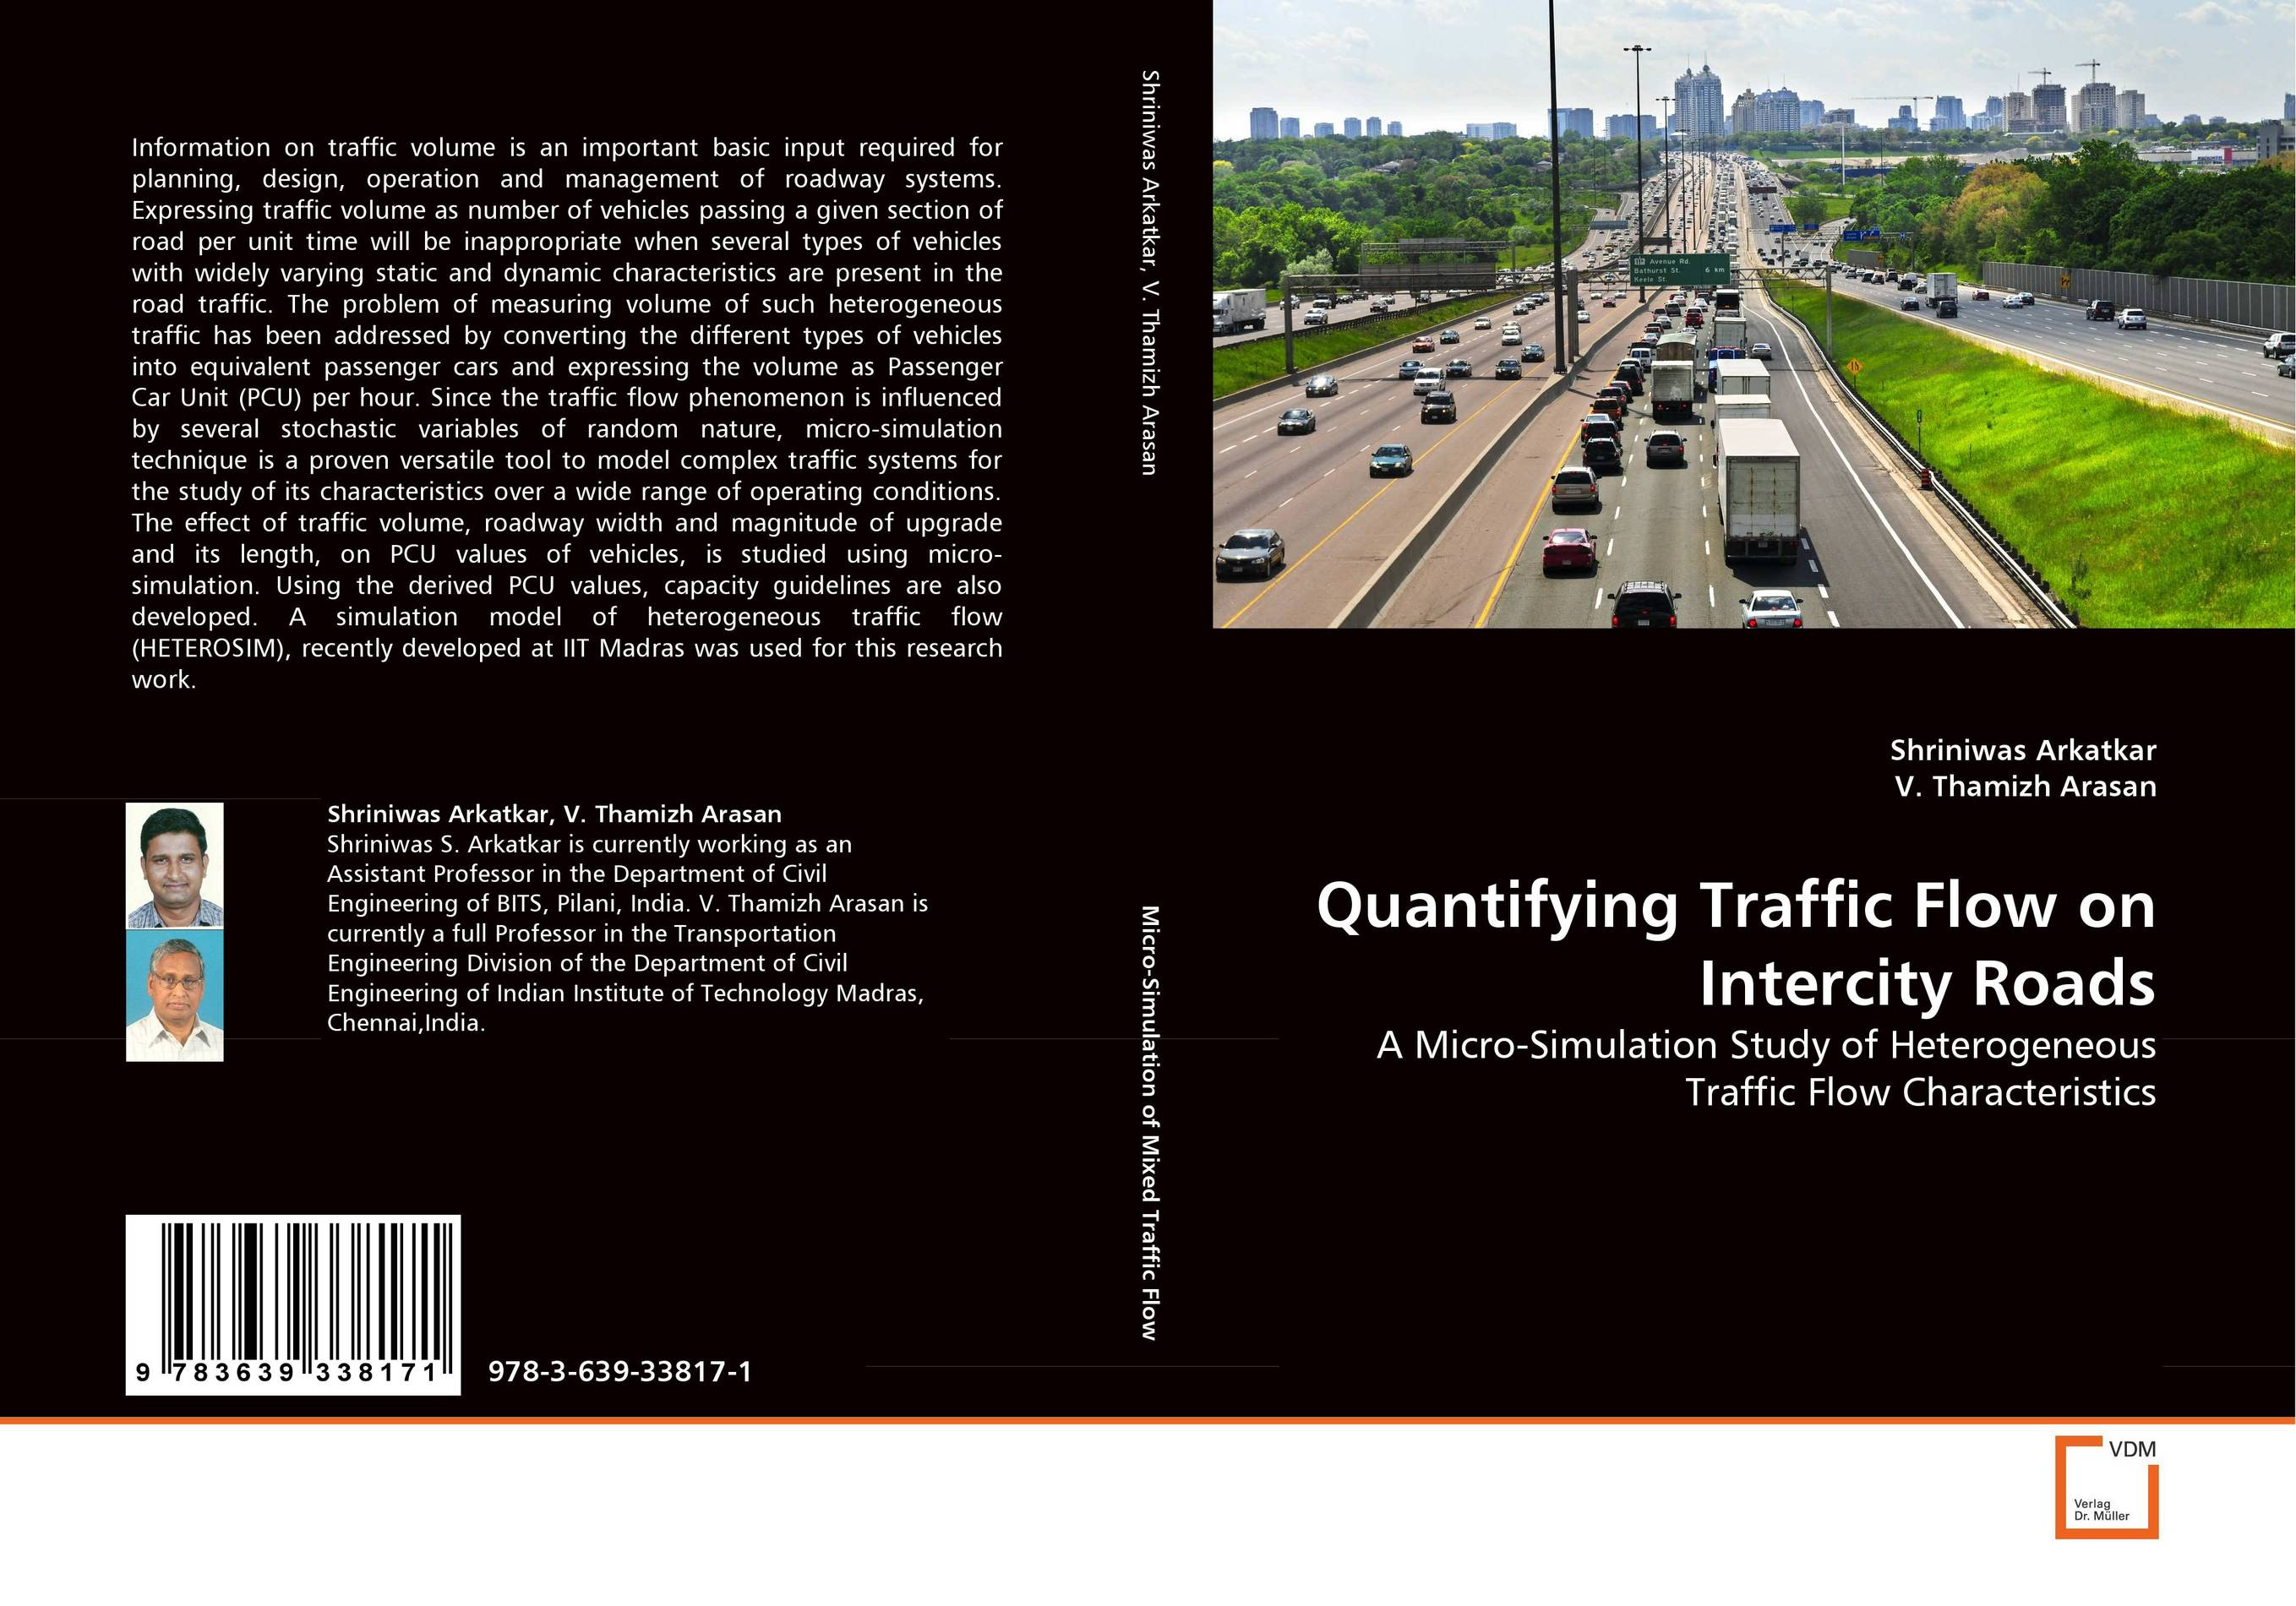 Quantifying Traffic Flow on Intercity Roads yec ccs pcu